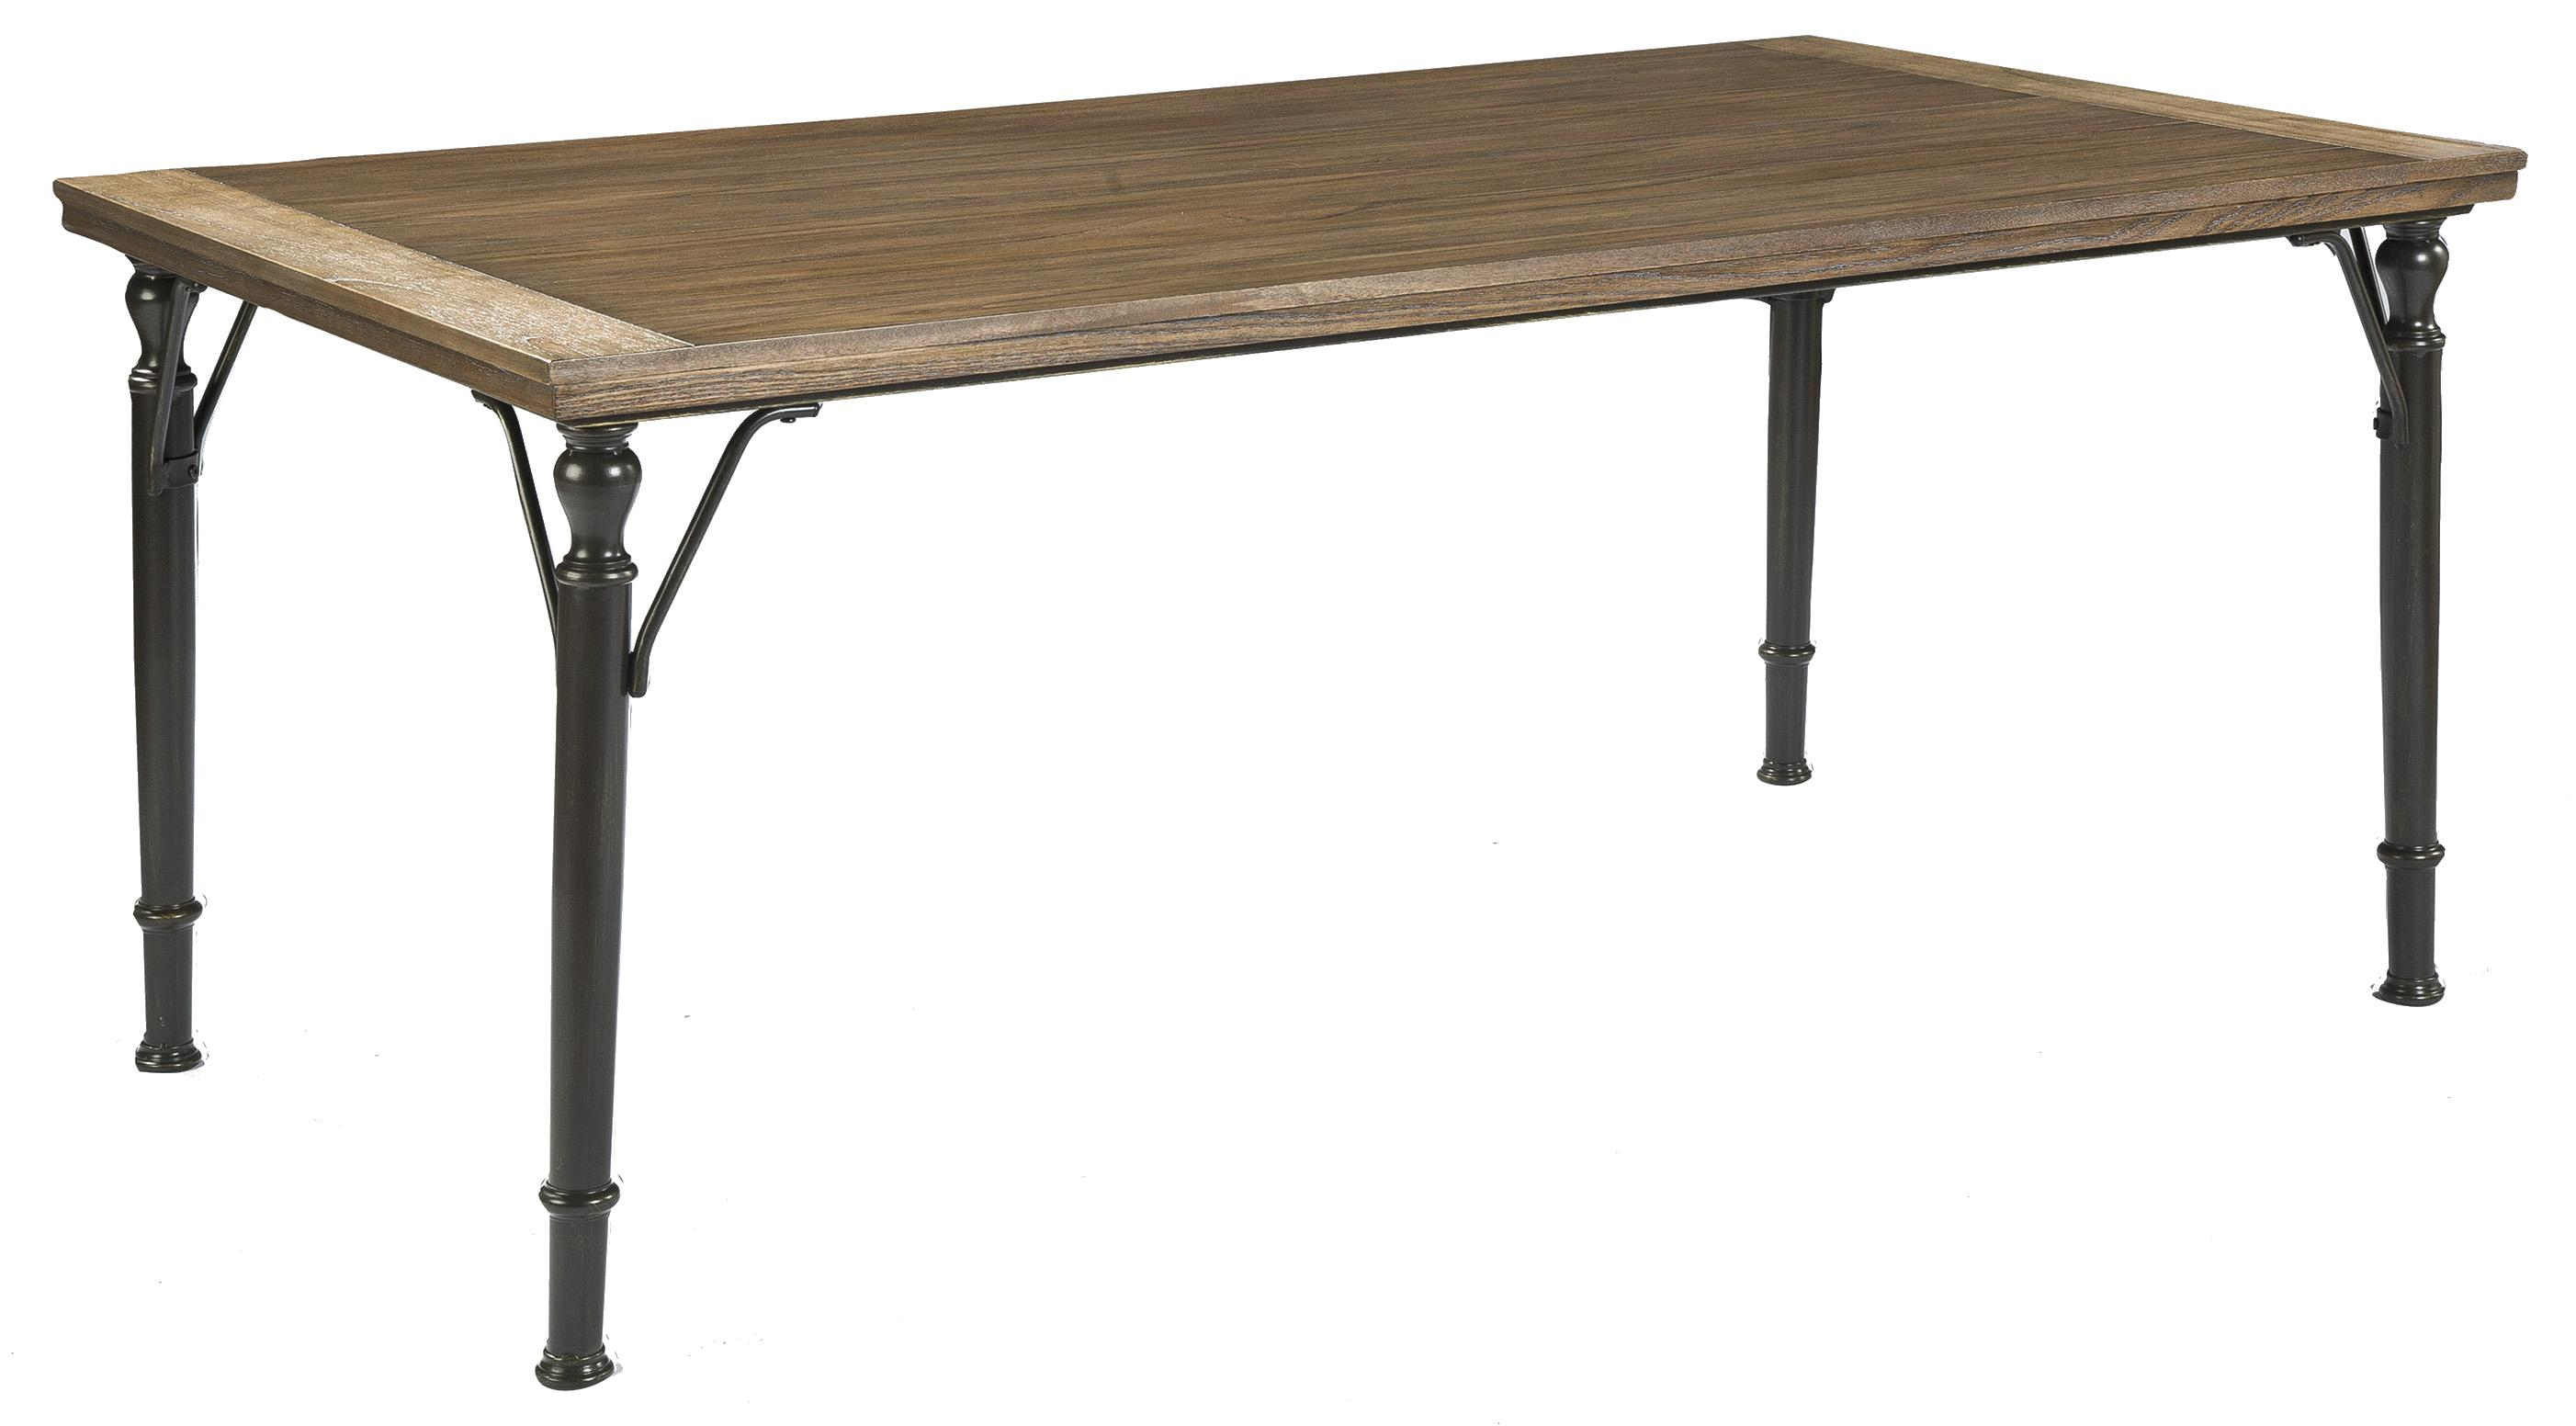 Medium Rustic Brown Rectangular Dining Room Table w\/ Metal Legs by Signature Design by Ashley